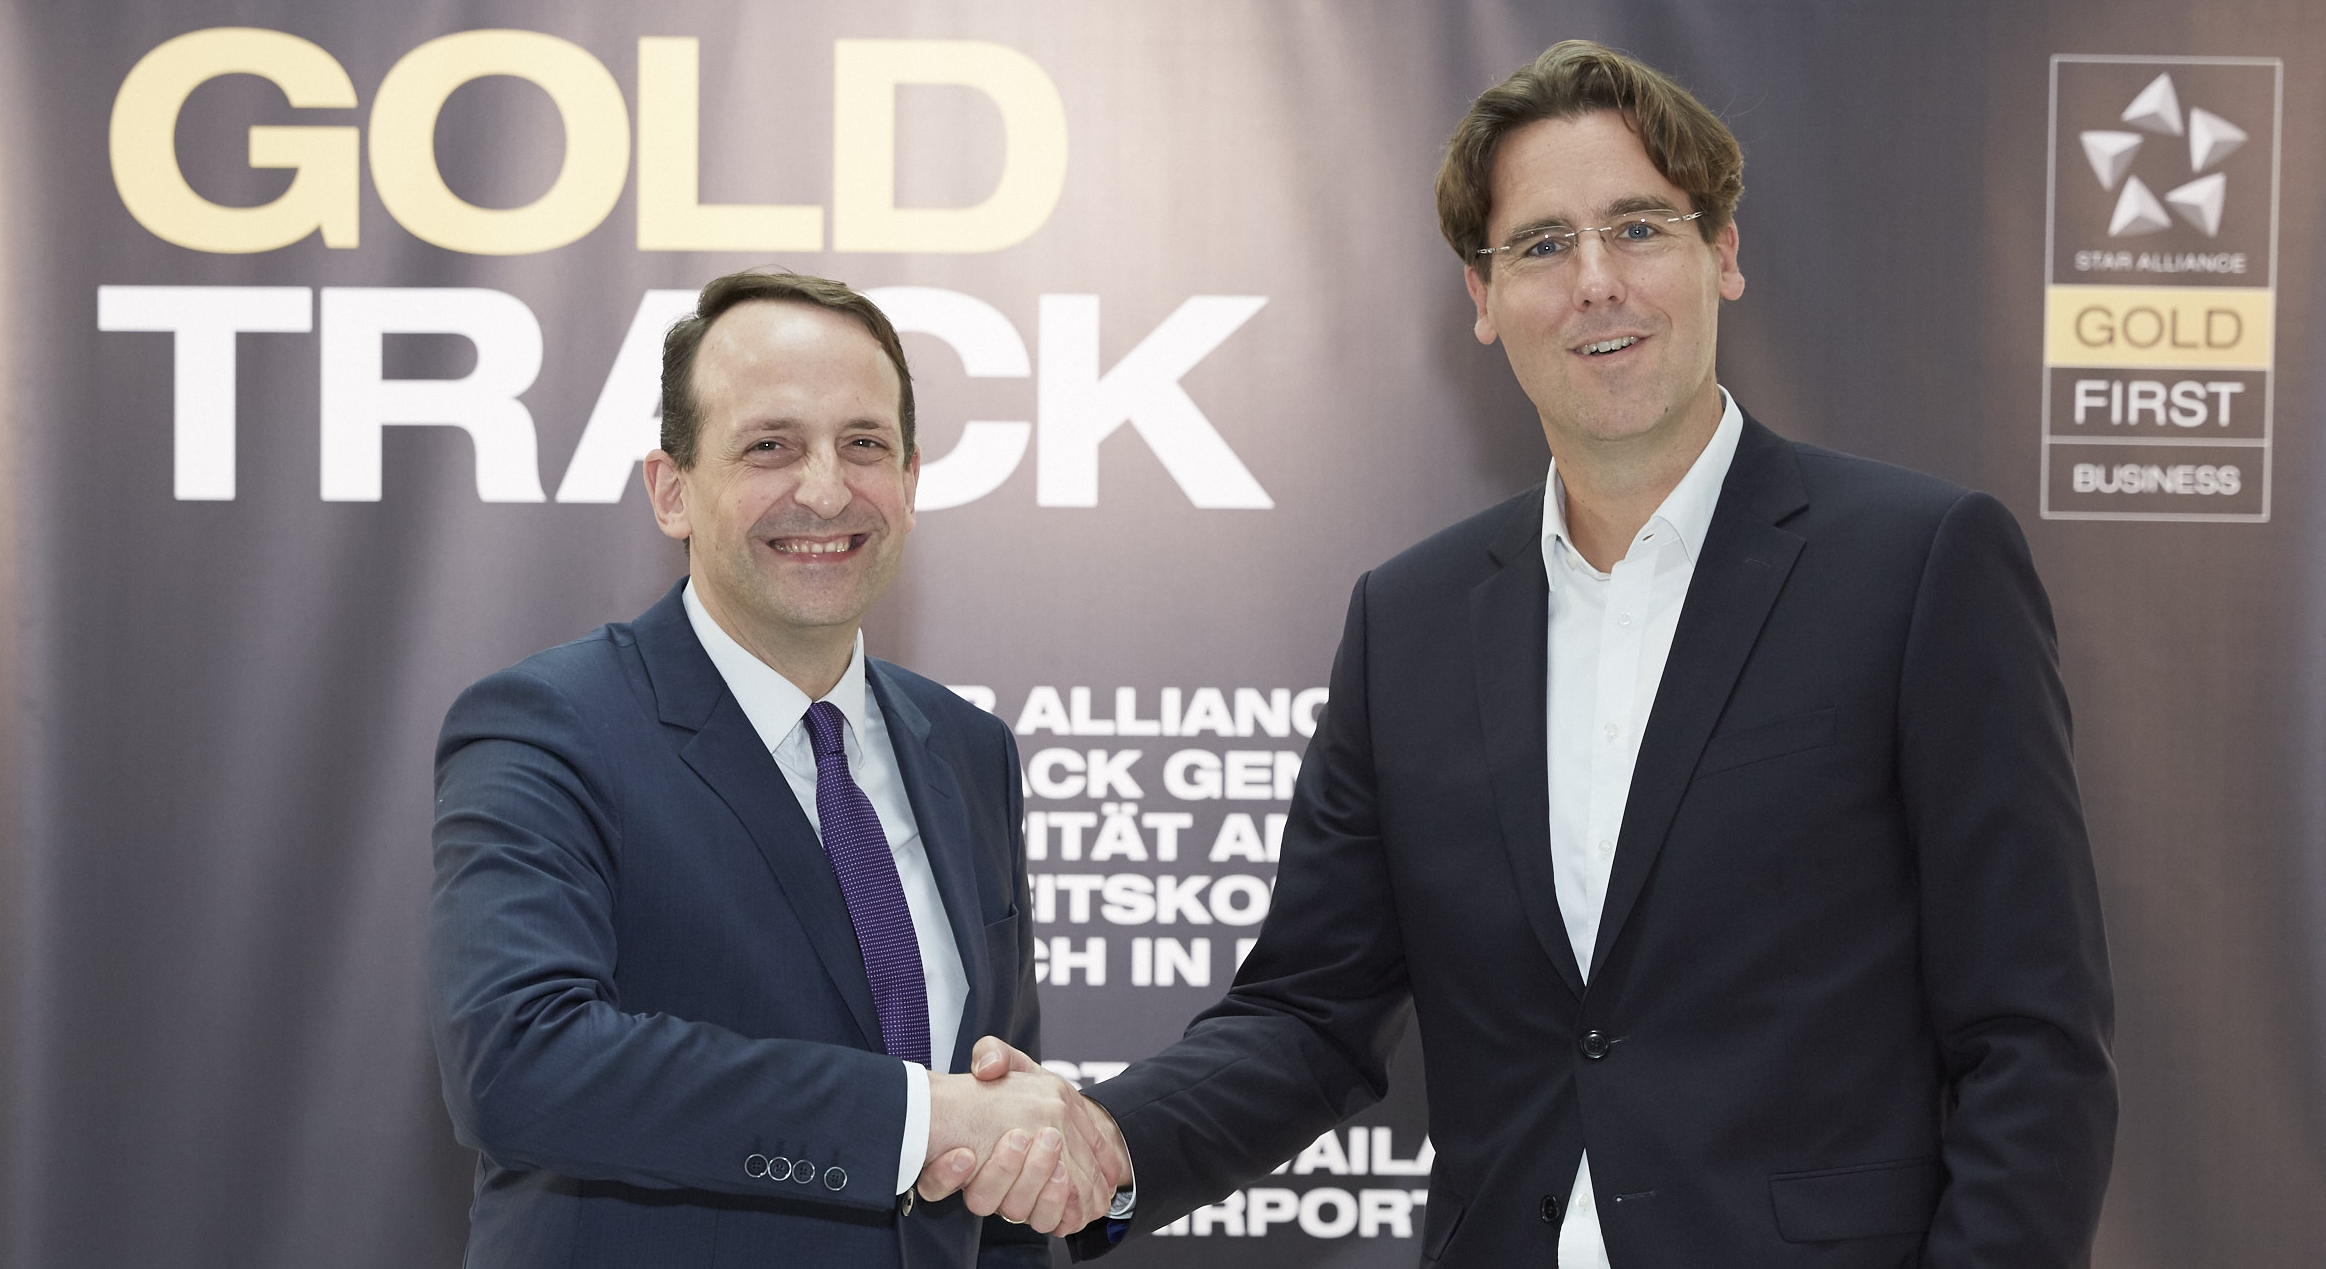 Senior Executive Vice President at Fraport AG for Airside & Terminal Management, Corporate Safety & Security Pierre Dominique Prümm (left) shakes hands with Lufthansa's Björn Becker, Senior Director Product Management Ground & Digital Services after Star Alliance Gold Track branding is installed in Frankfurt airport